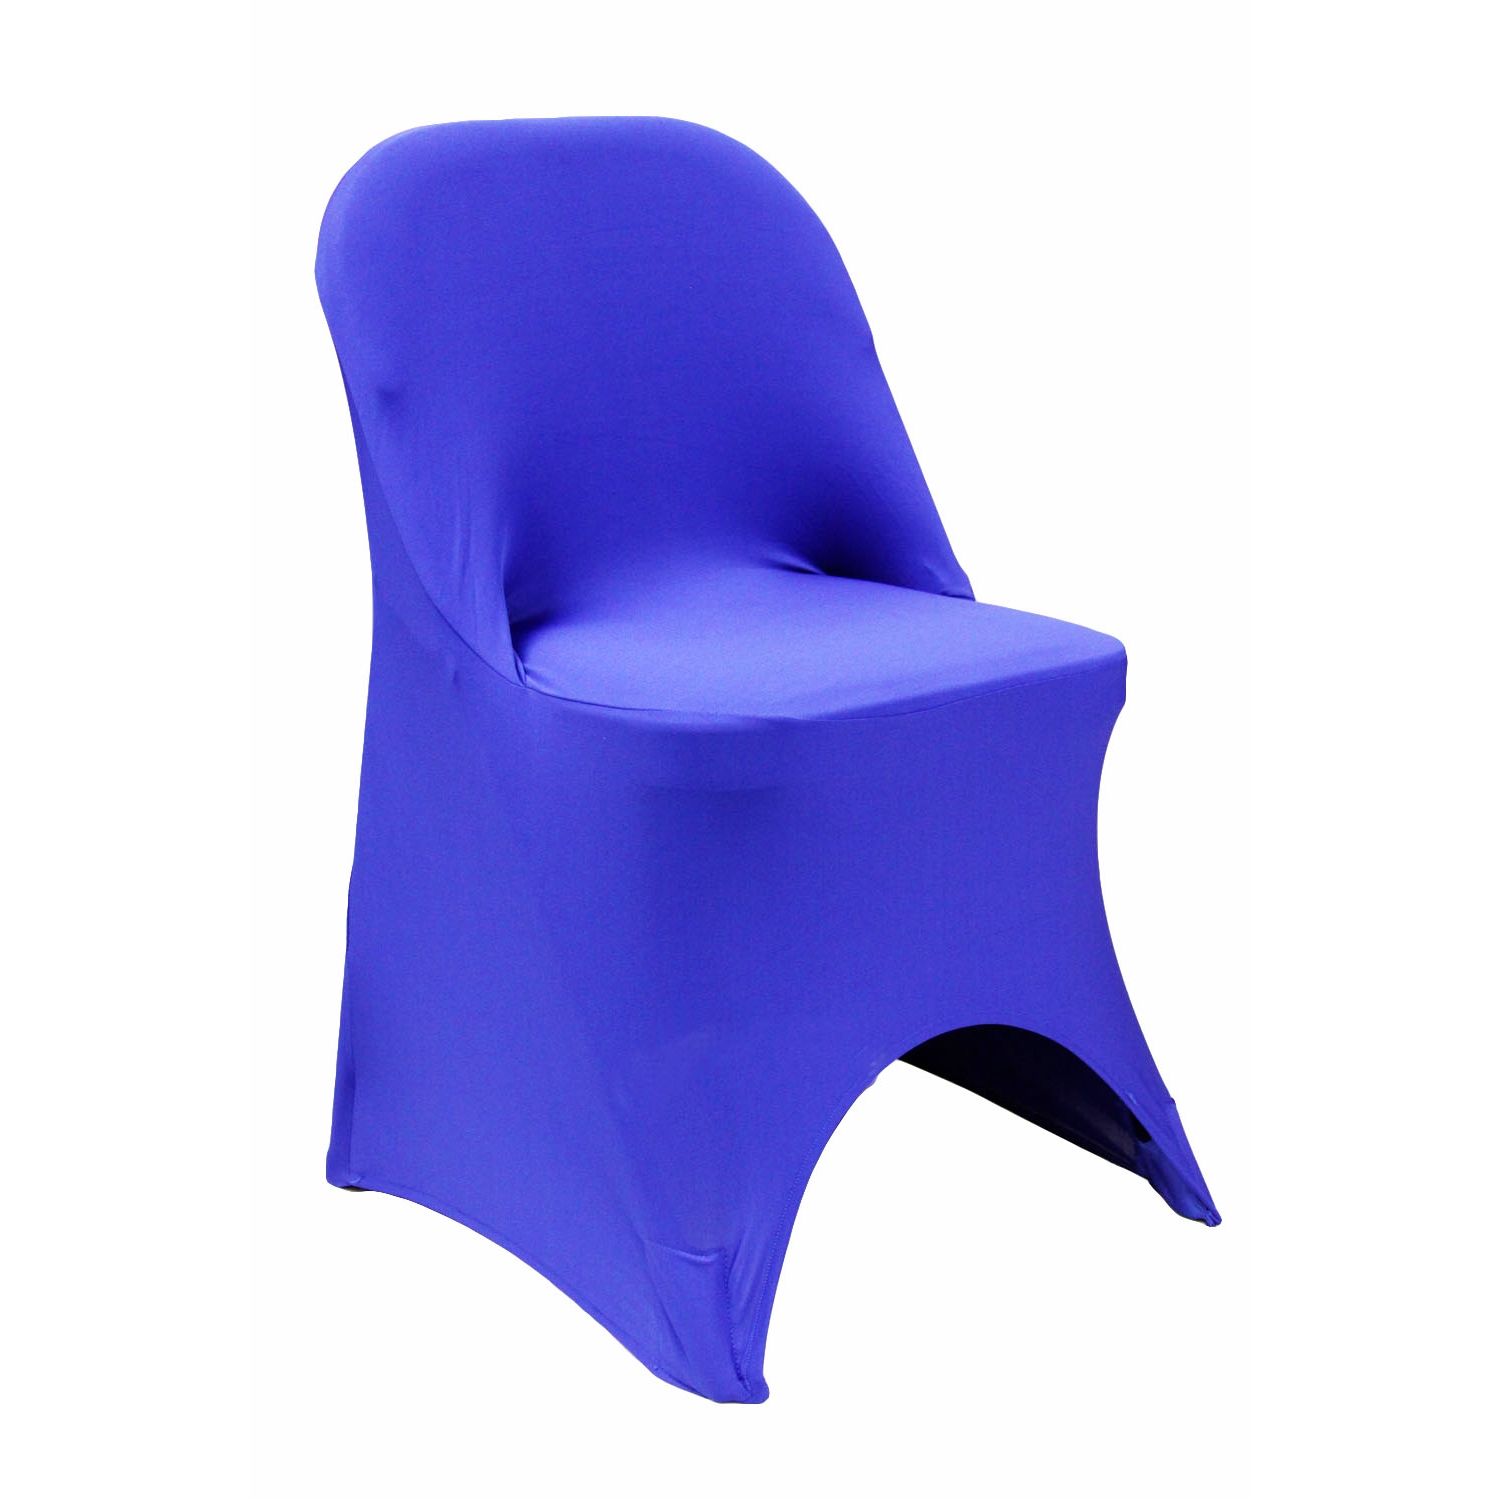 Royal Blue Chair Folding Spandex Chair Cover Royal Blue